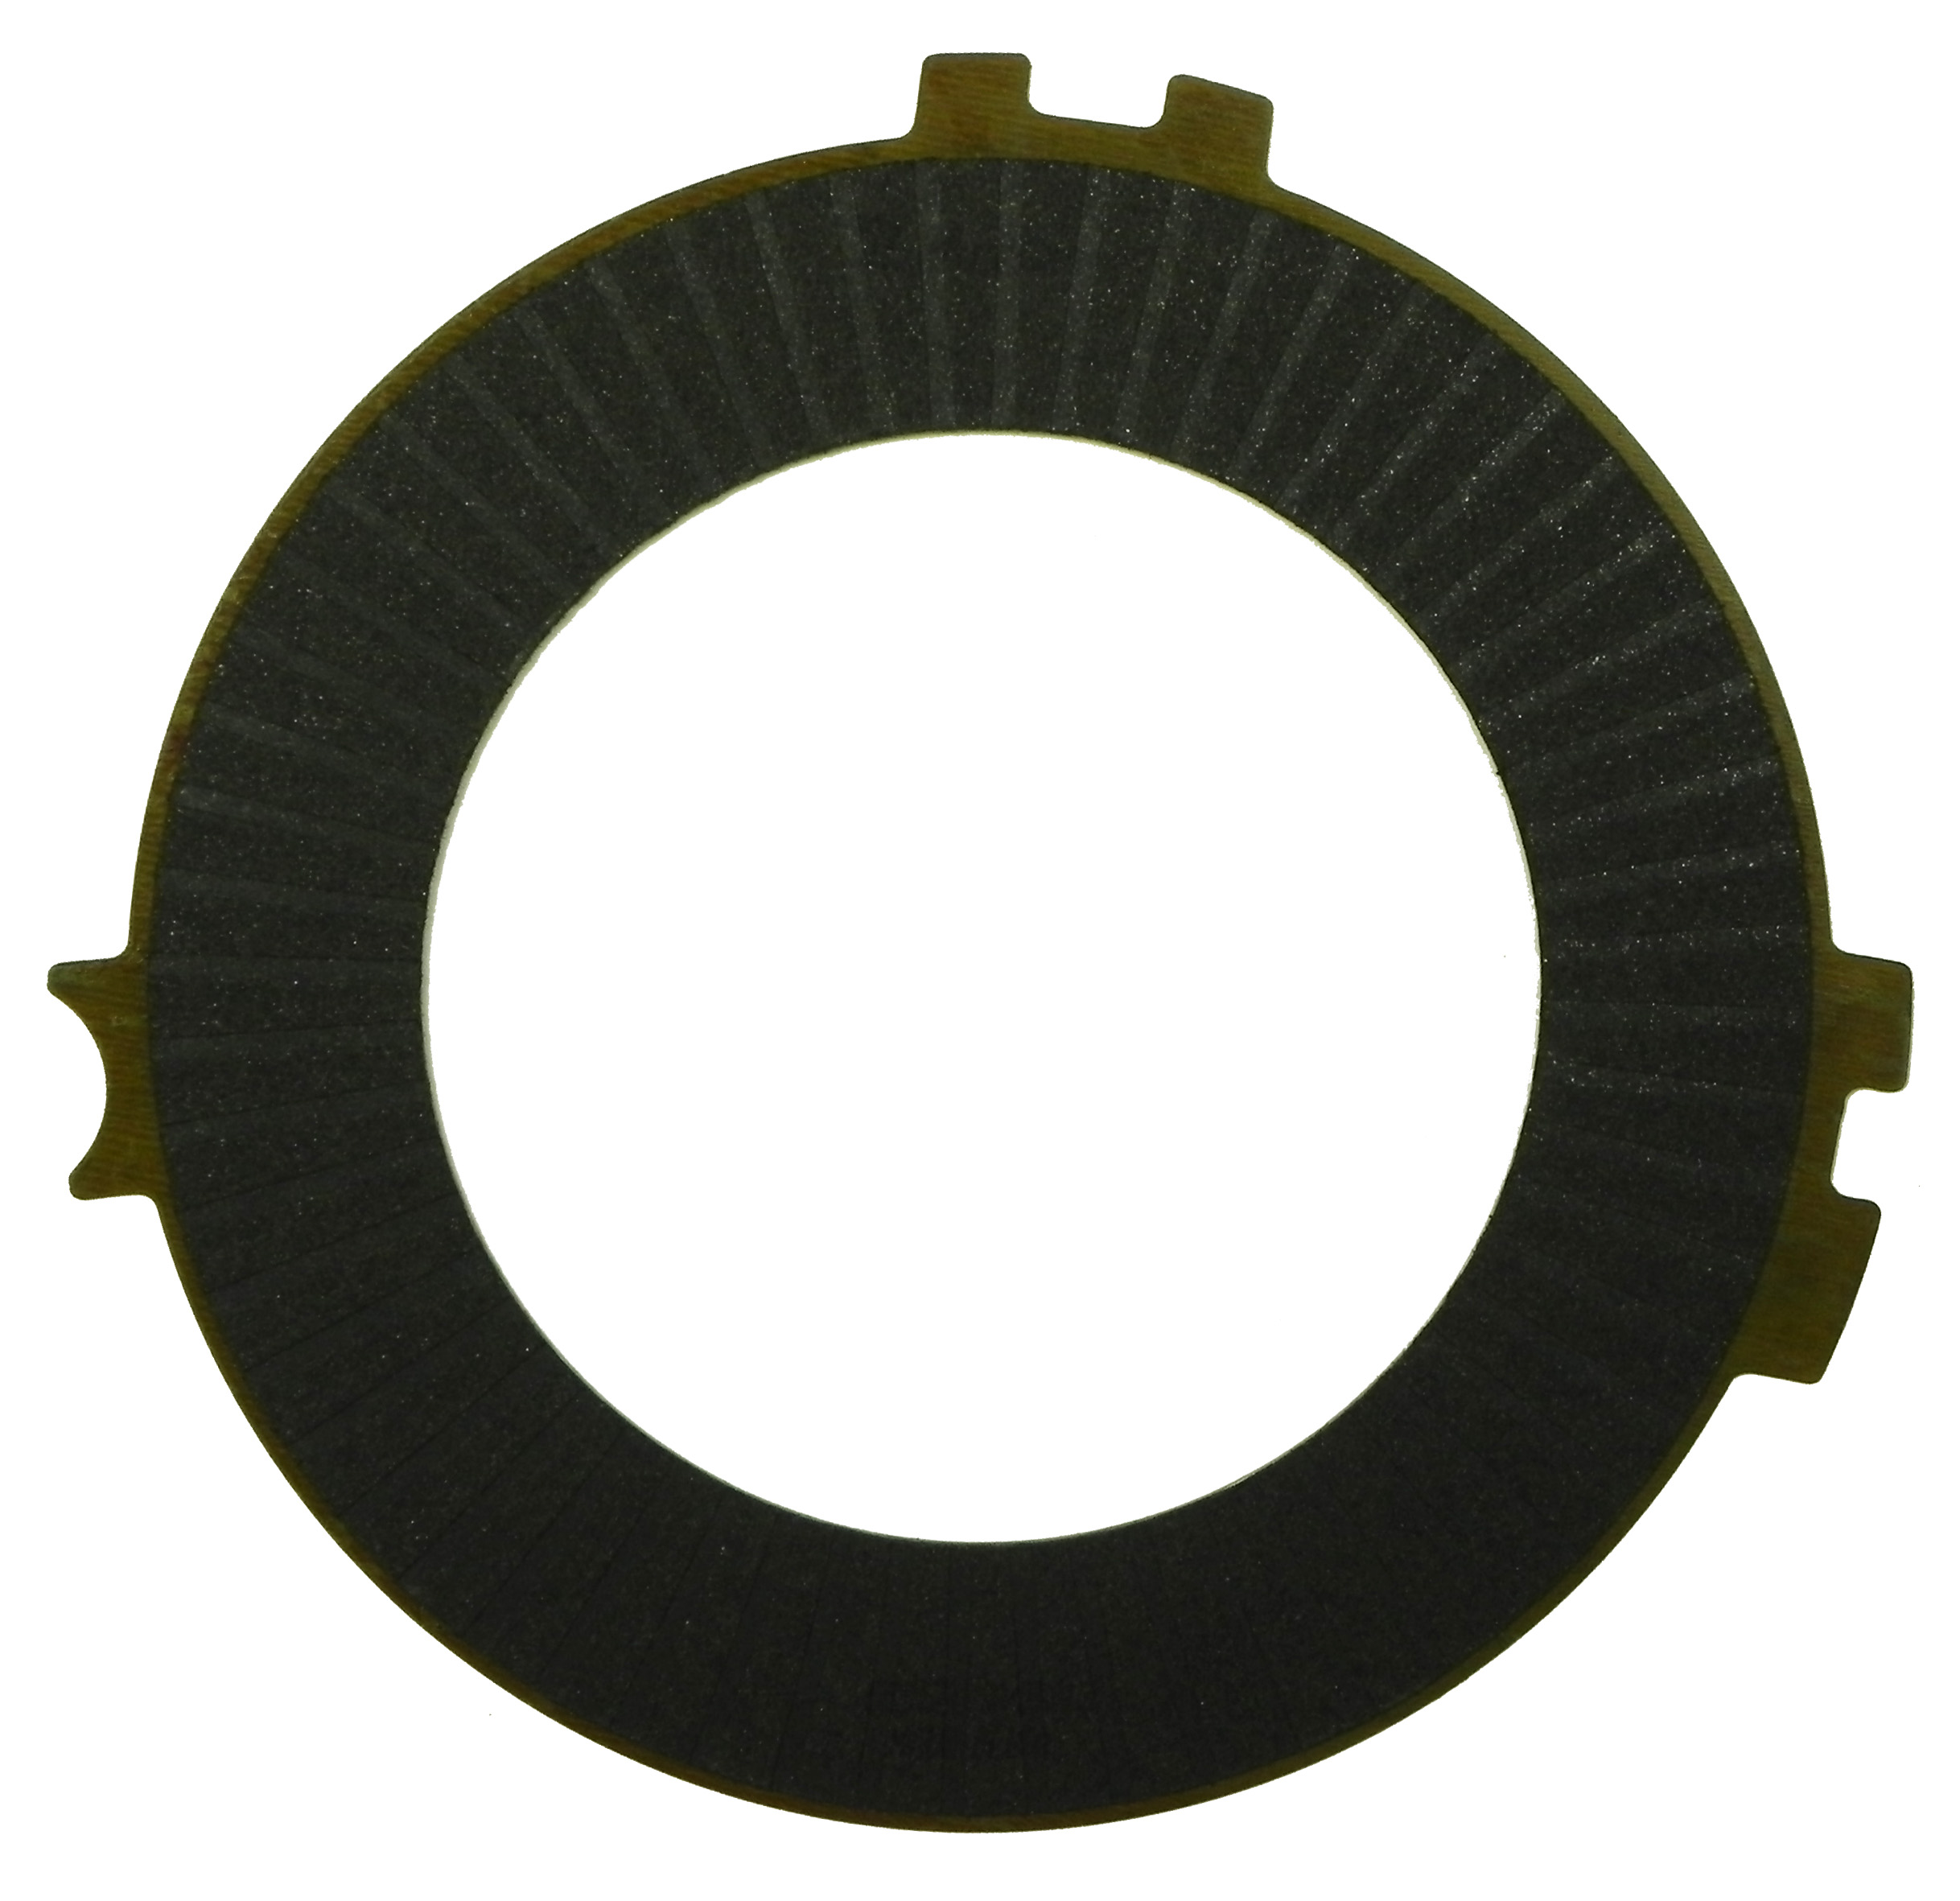 R559560 | 2002-ON Friction Clutch Plate High Energy 4th, Single Sided, OD Spline High Energy (Volvo Only)